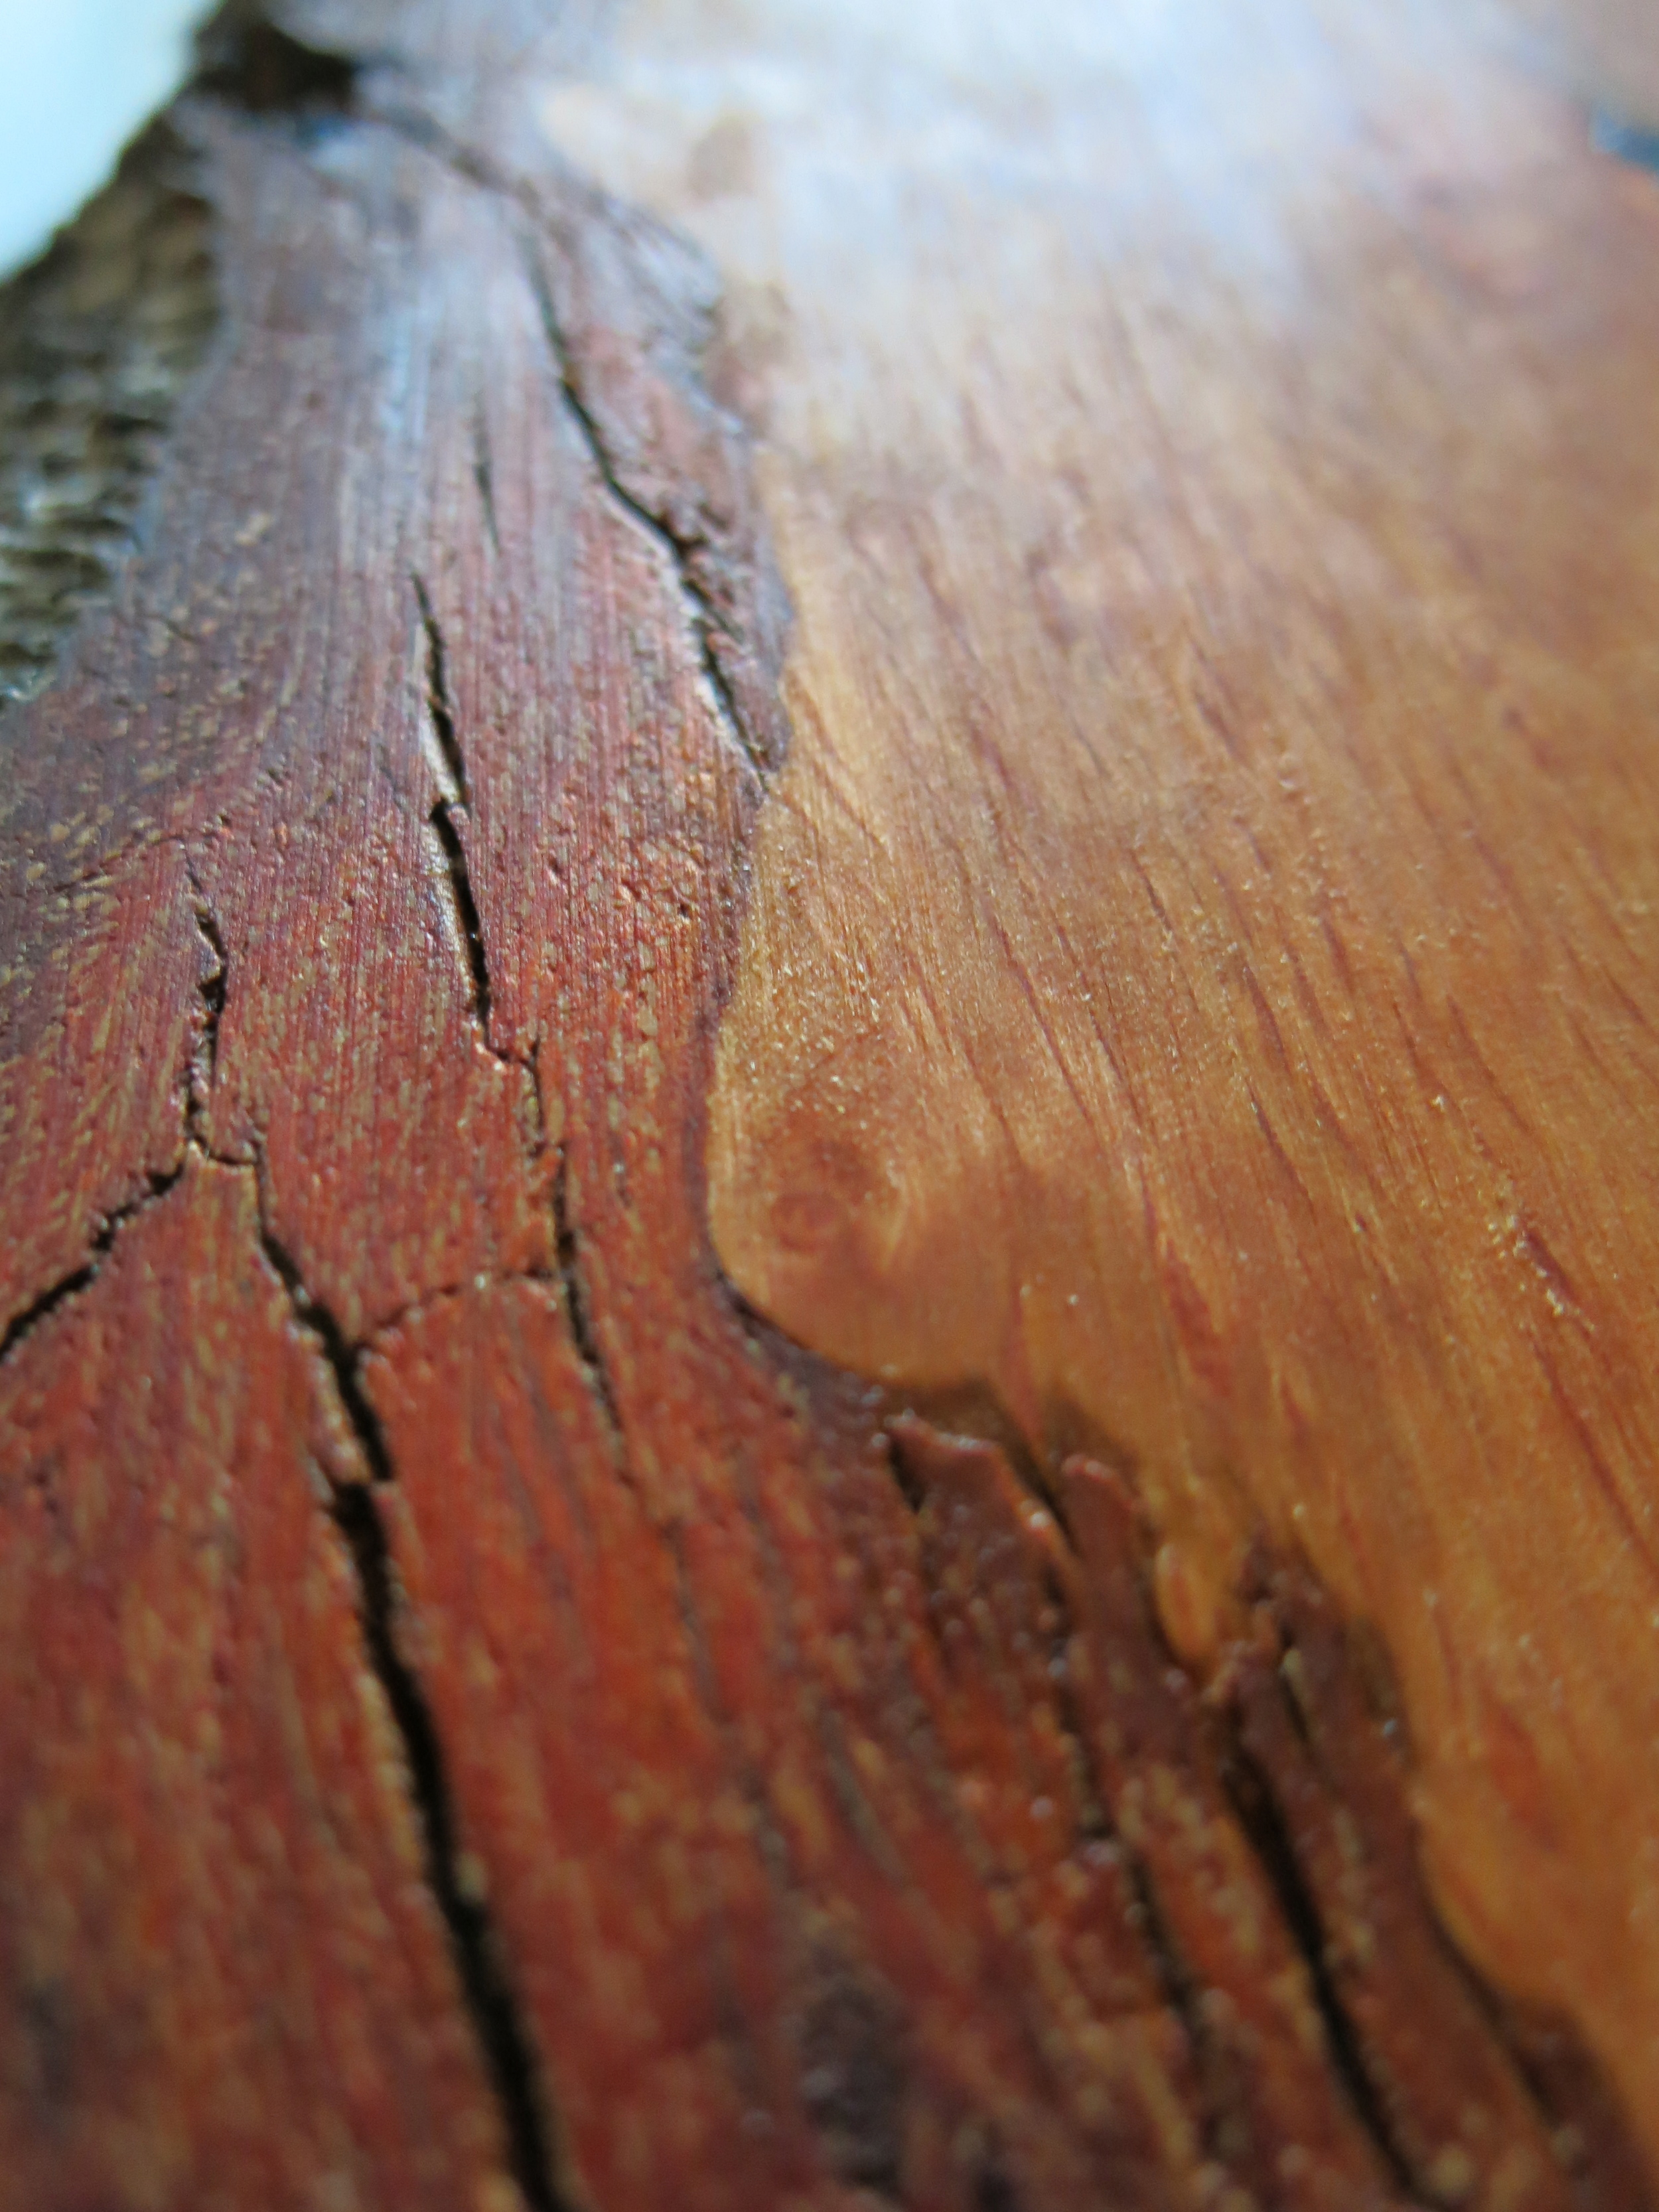 Alnus glutinosa has beautiful orange wood when oiled. By keeping the bark intact, the character of the tree is not lost.